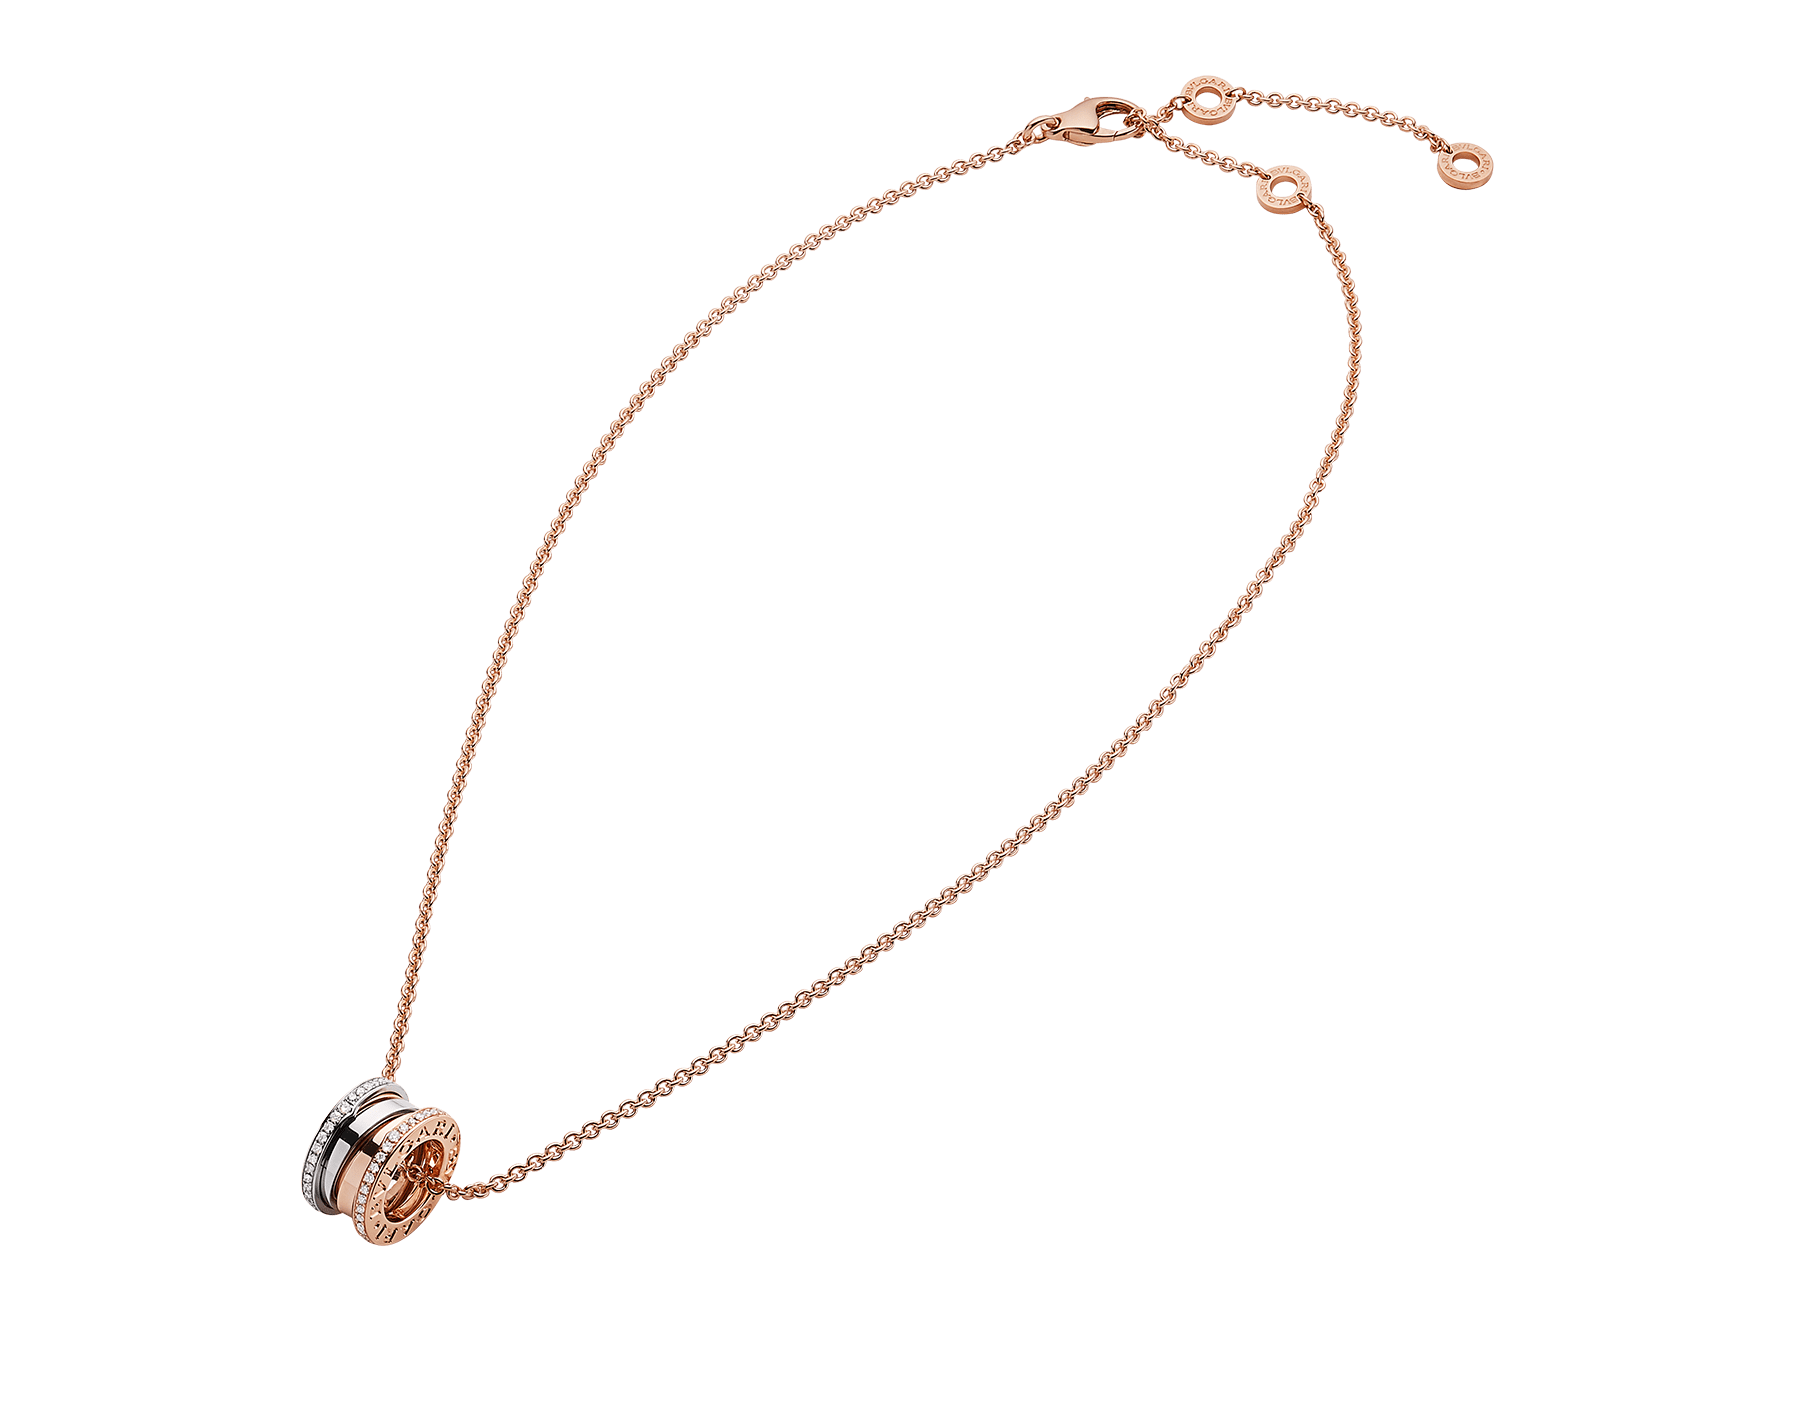 B.zero1 necklace with 18 kt rose and white gold pendant set with pavé diamonds (0.41 ct) on the edges and 18 kt rose gold chain. 355062 image 2